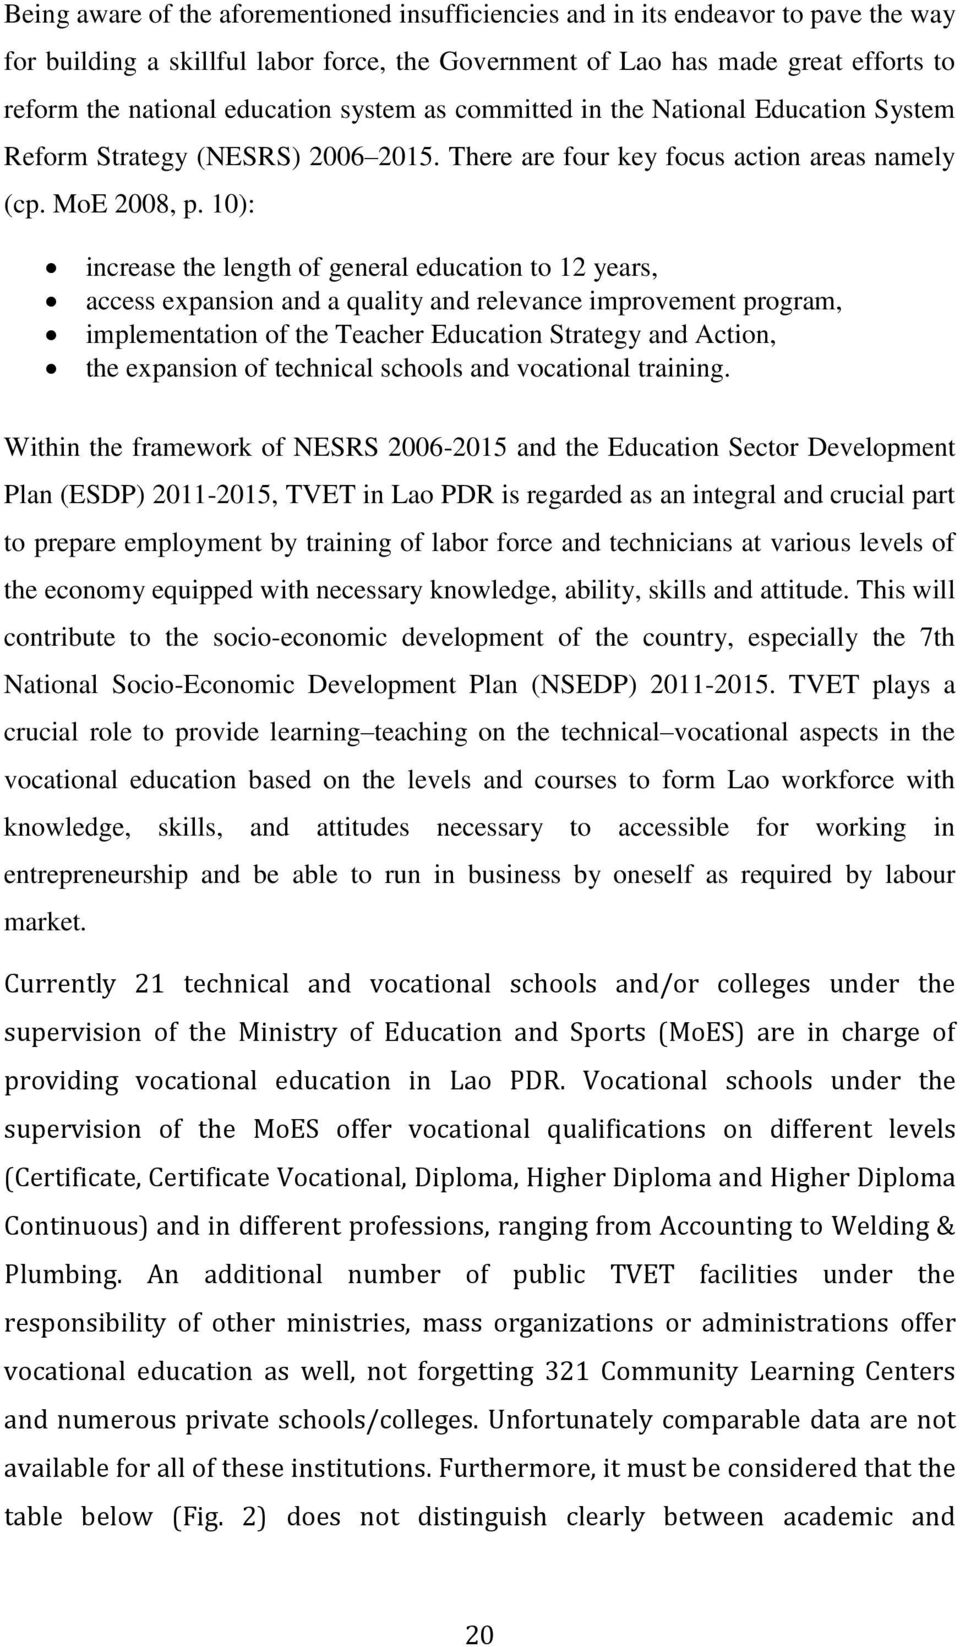 10): increase the length of general education to 12 years, access expansion and a quality and relevance improvement program, implementation of the Teacher Education Strategy and Action, the expansion